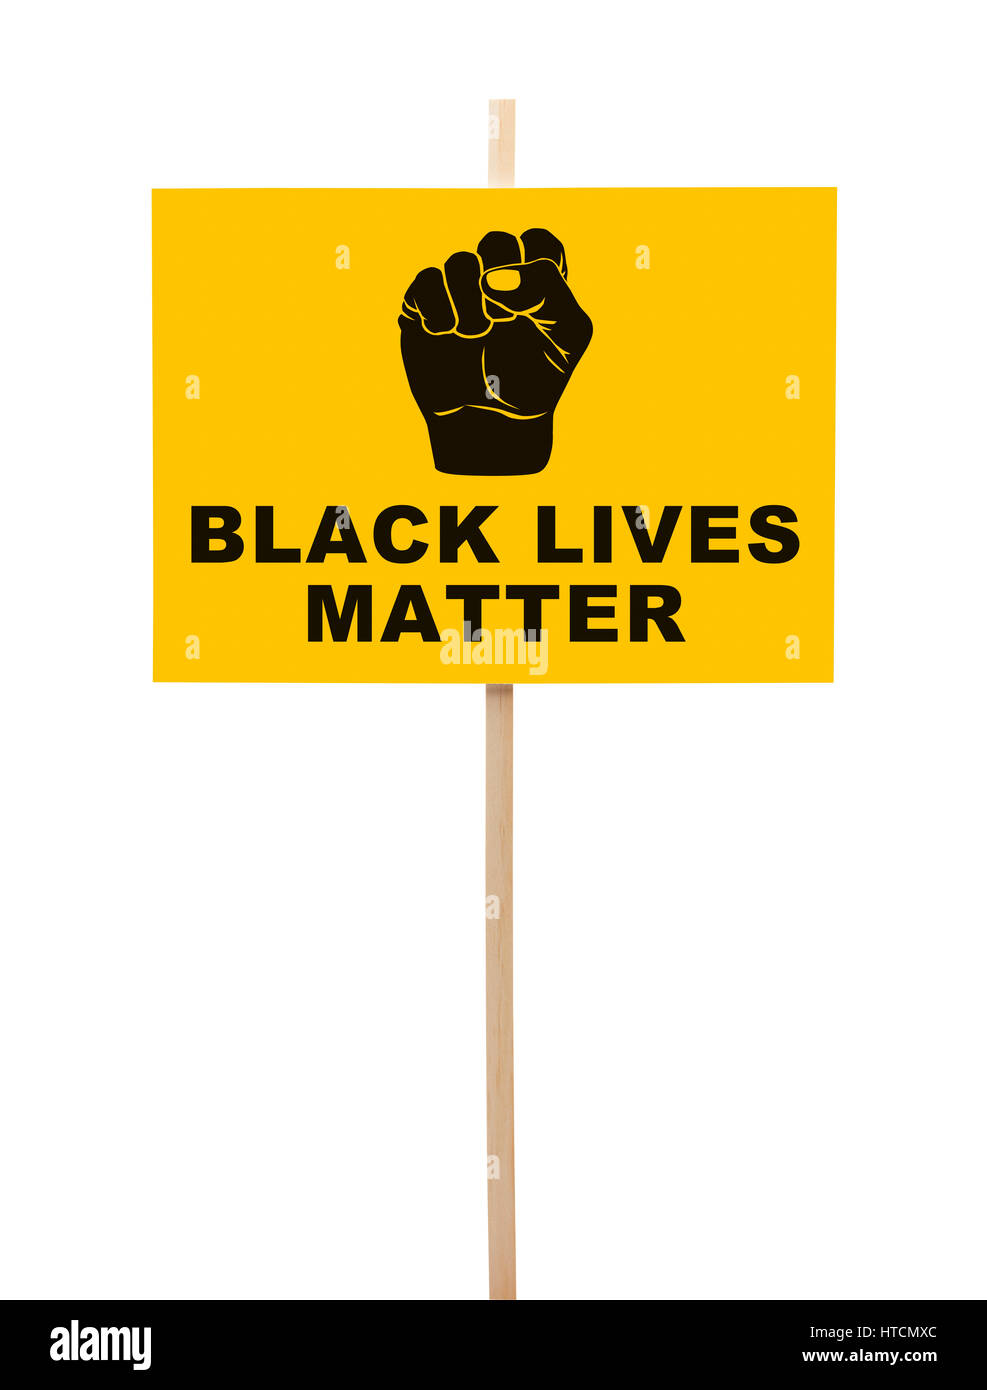 Black Lives Matter Sign With Fist Isolated on White. - Stock Image